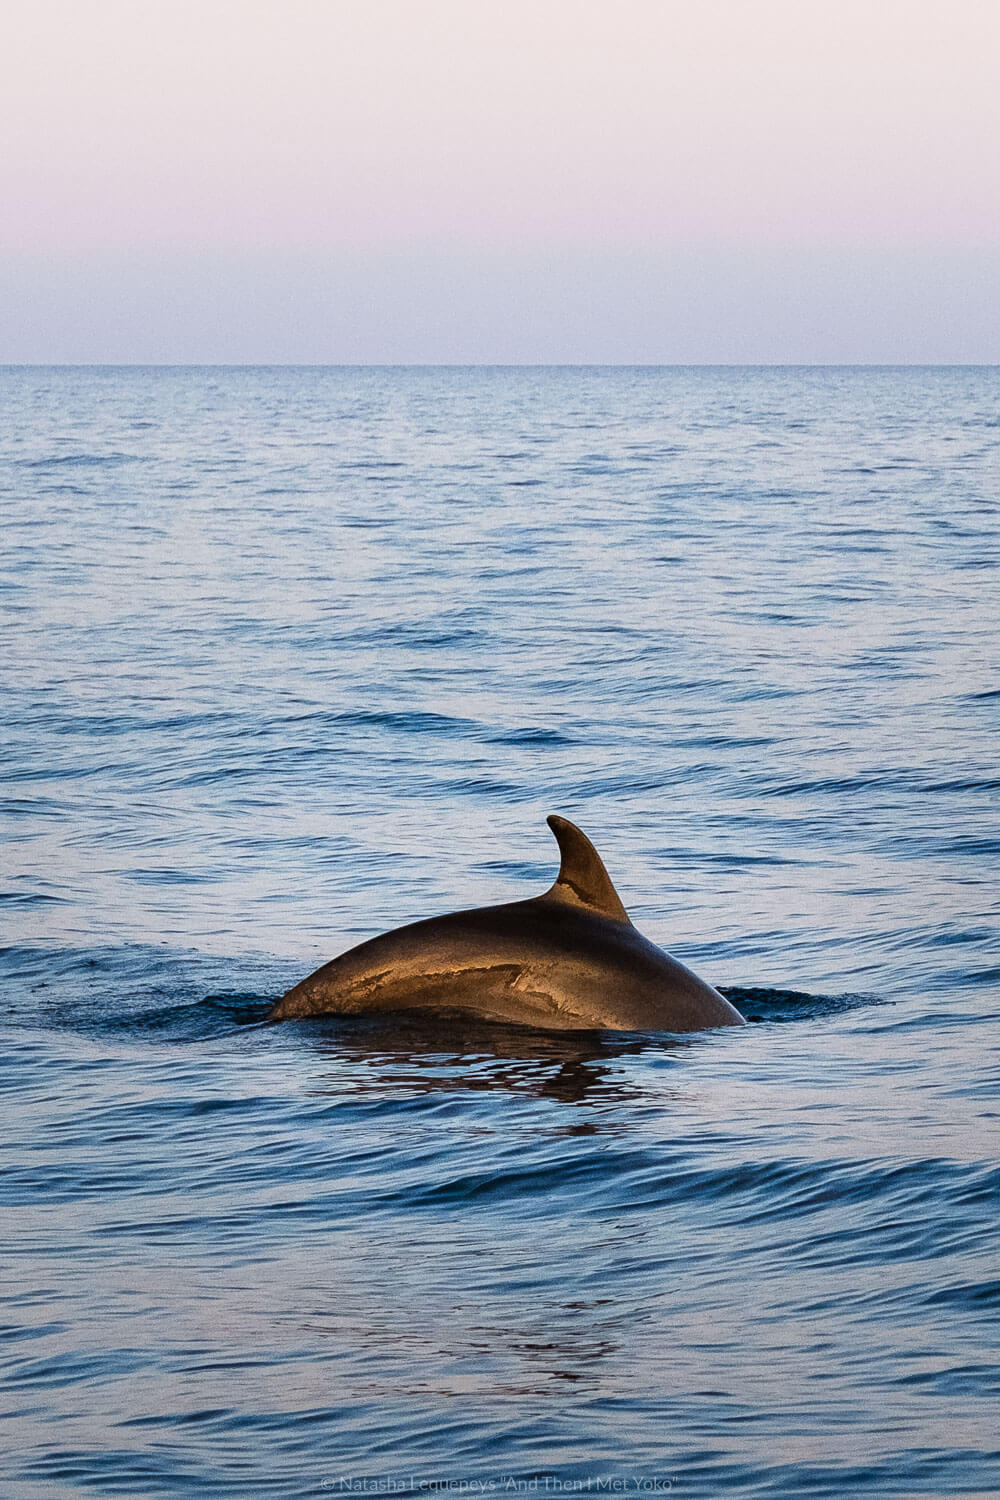 """A dolphin swims in Cinque Terre. Travel photography and guide by © Natasha Lequepeys for """"And Then I Met Yoko"""". #cinqueterre #italy #travelphotography"""